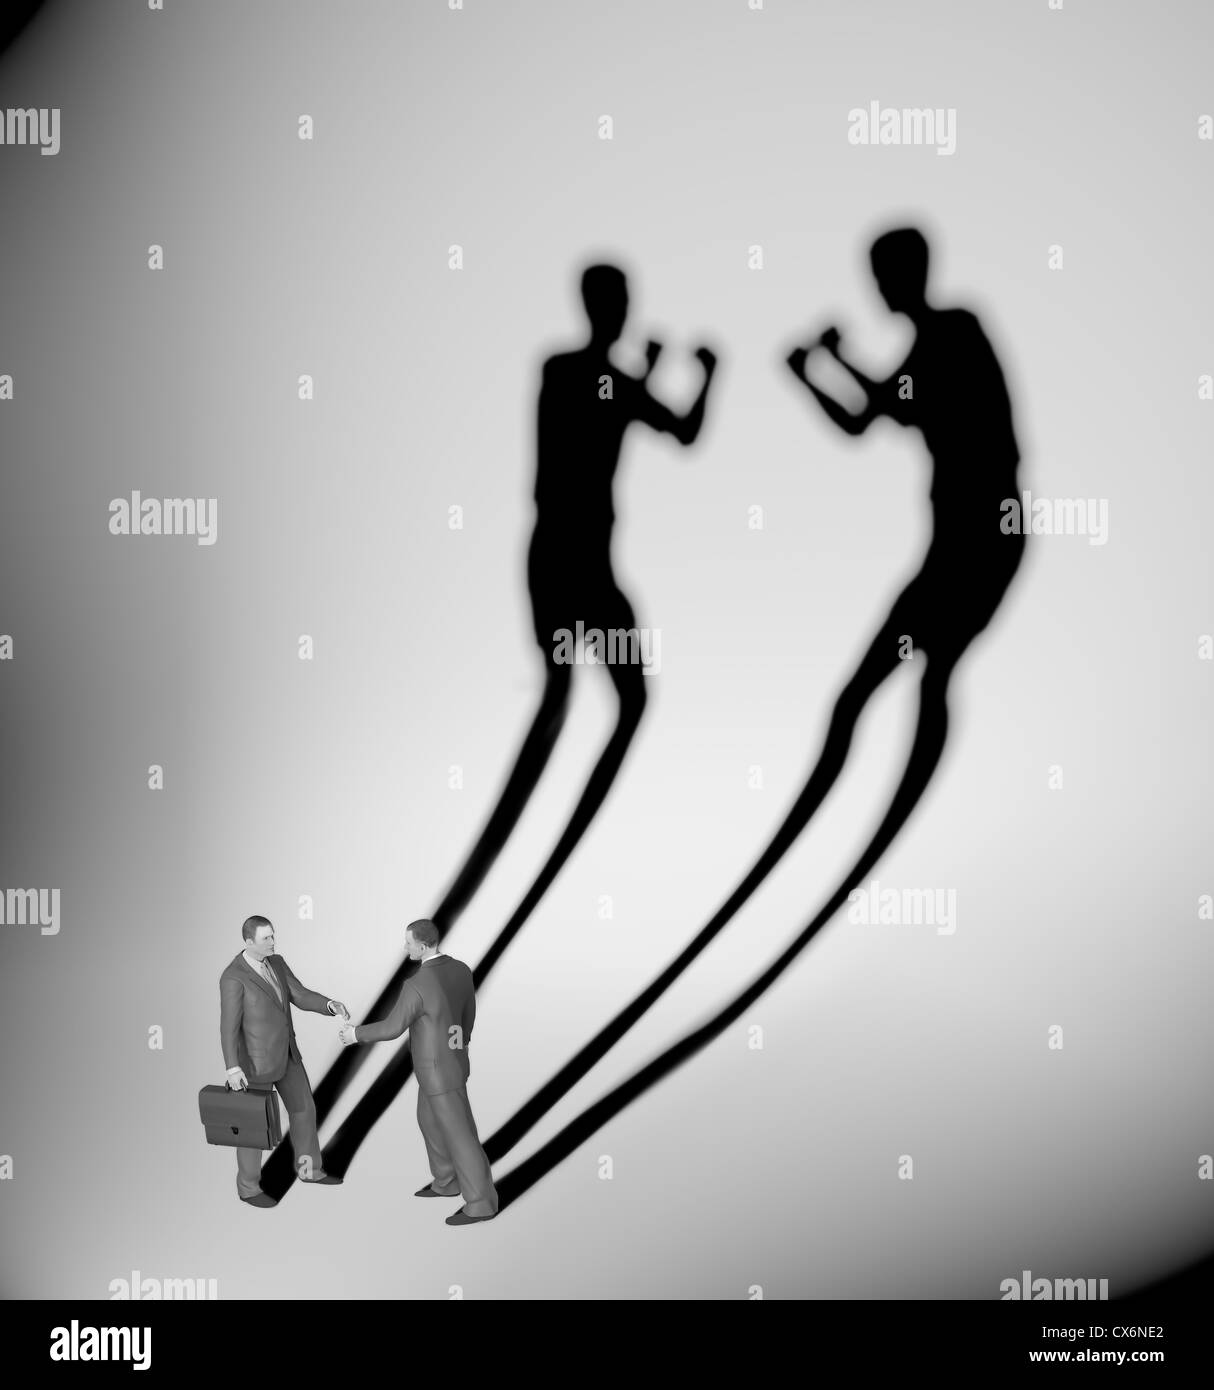 Two businessman casting a shadow shaped like two fighters - Stock Image